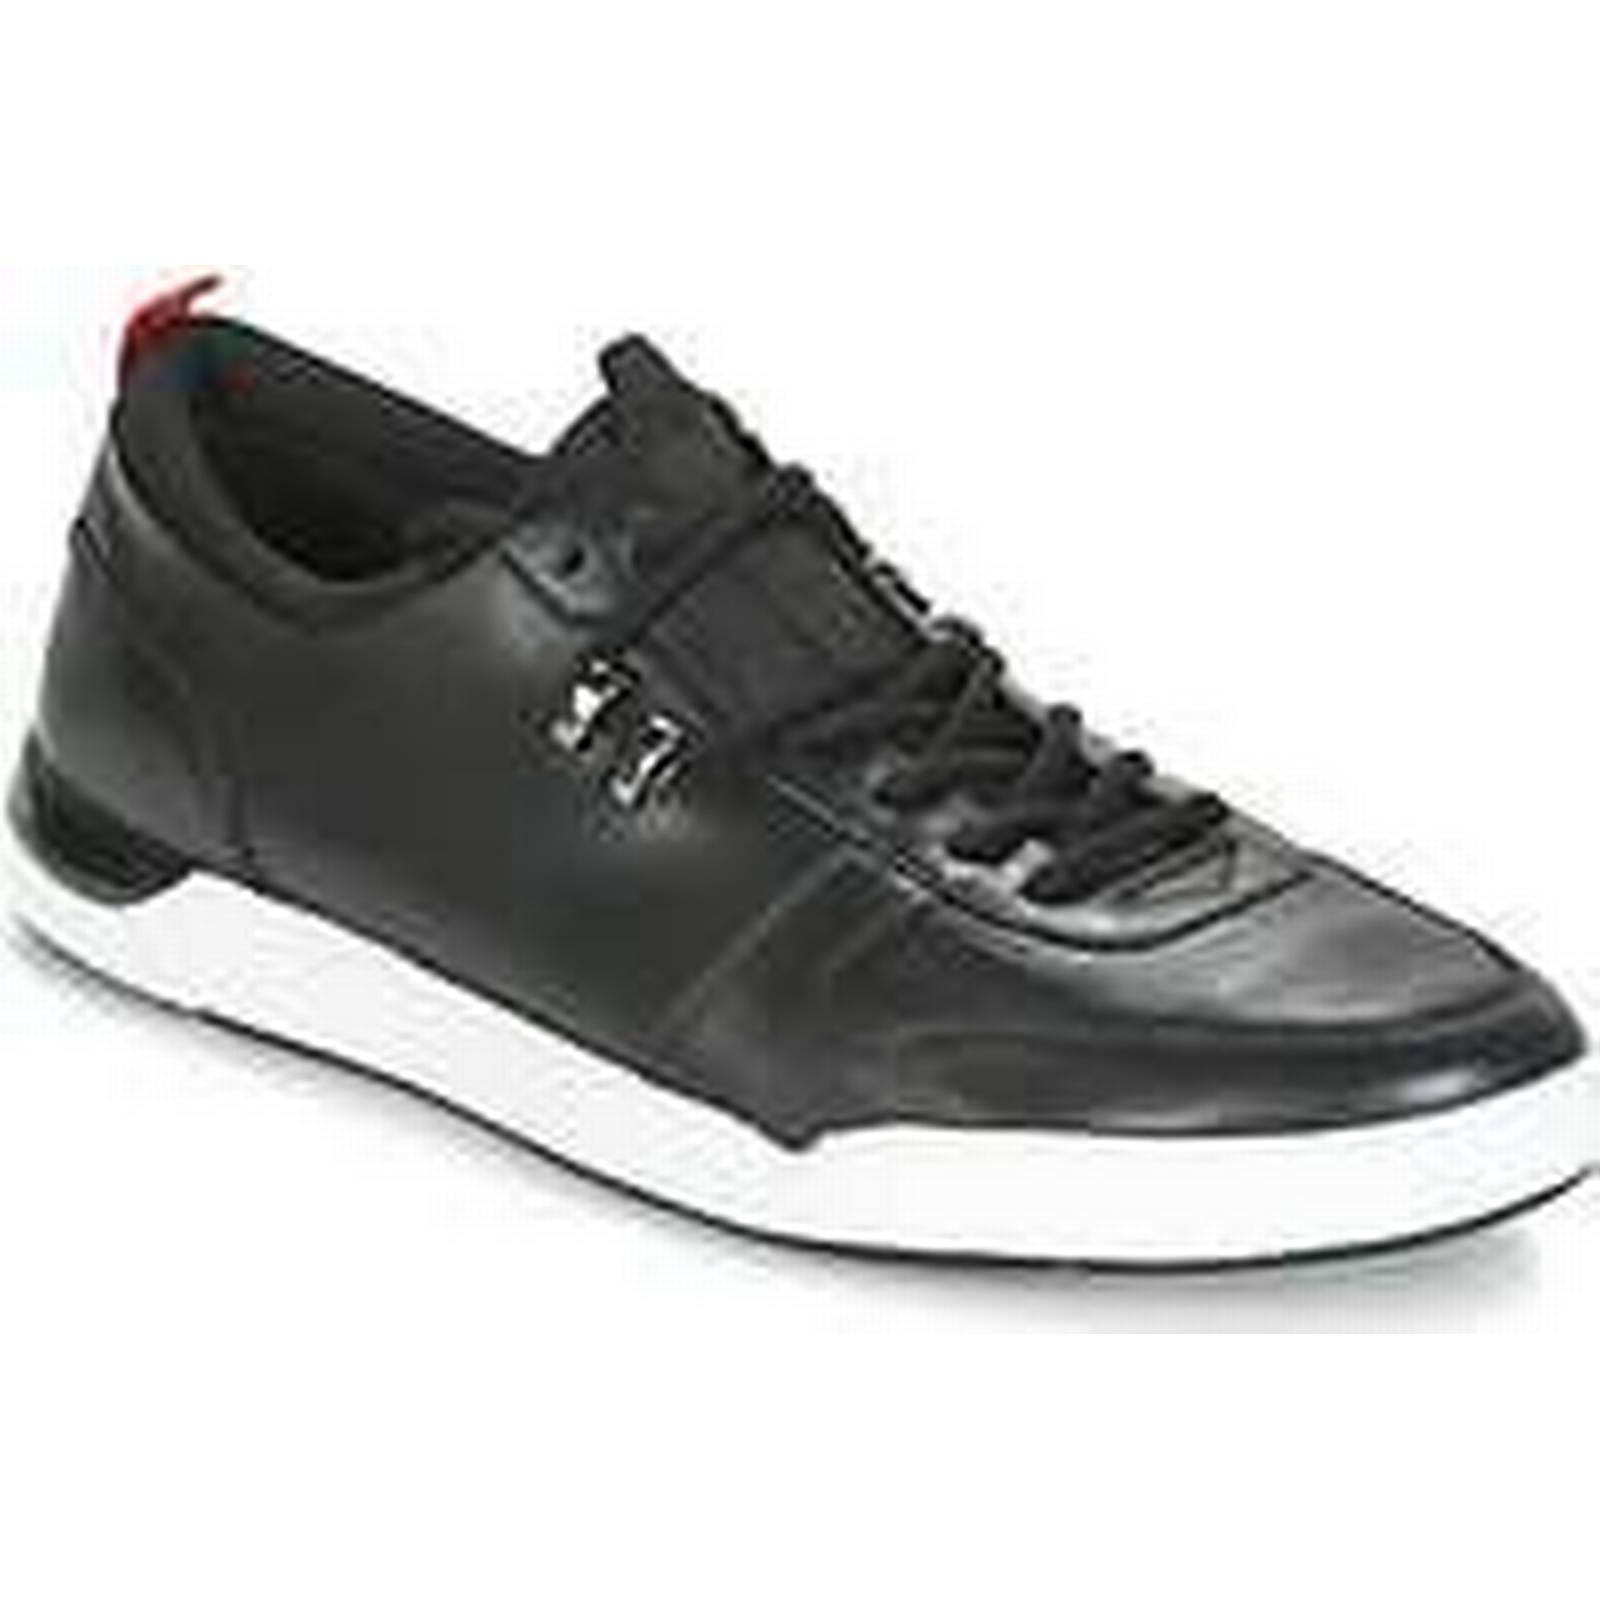 Spartoo.co.uk Shoes HUGO FUSION TENN men's Shoes Spartoo.co.uk (Trainers) in Black cba9a8